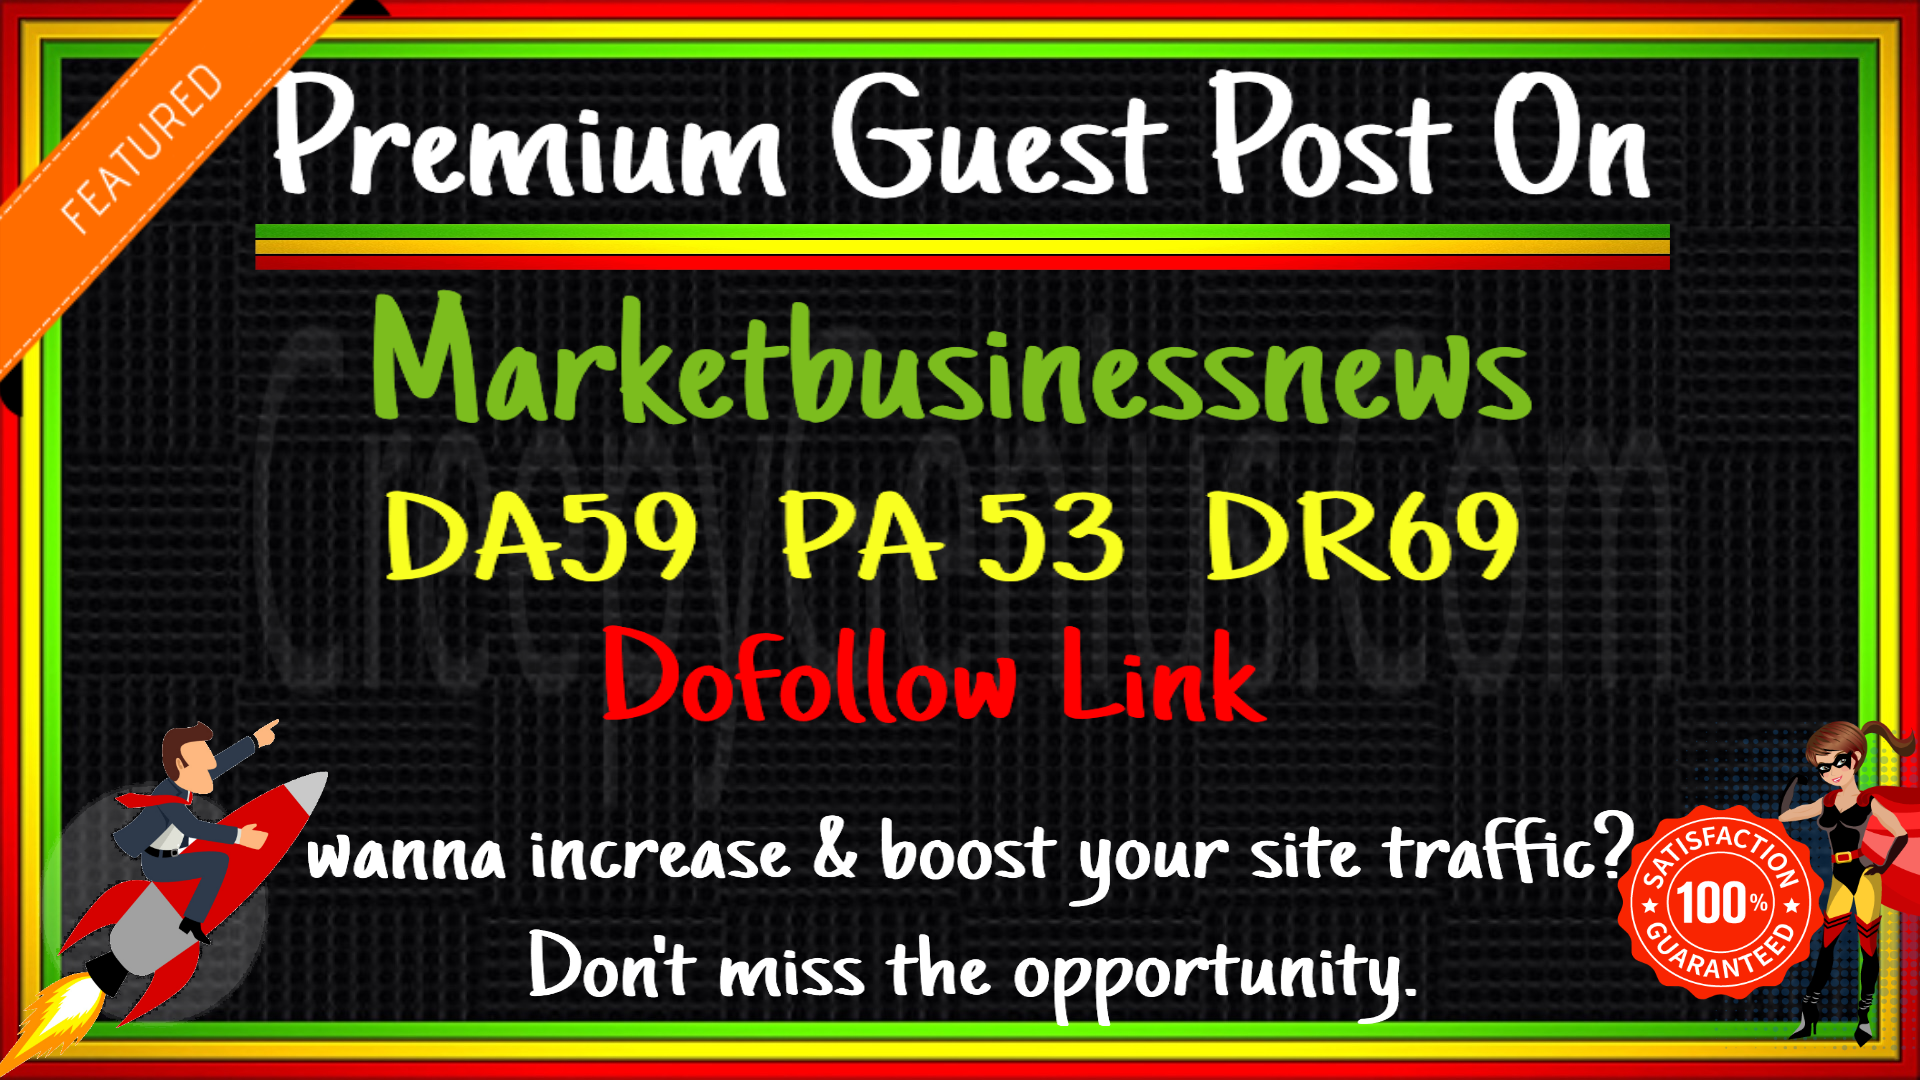 DO Guest Post ON marketbusinessmews. com With DOFOLLOW And Permanent Post